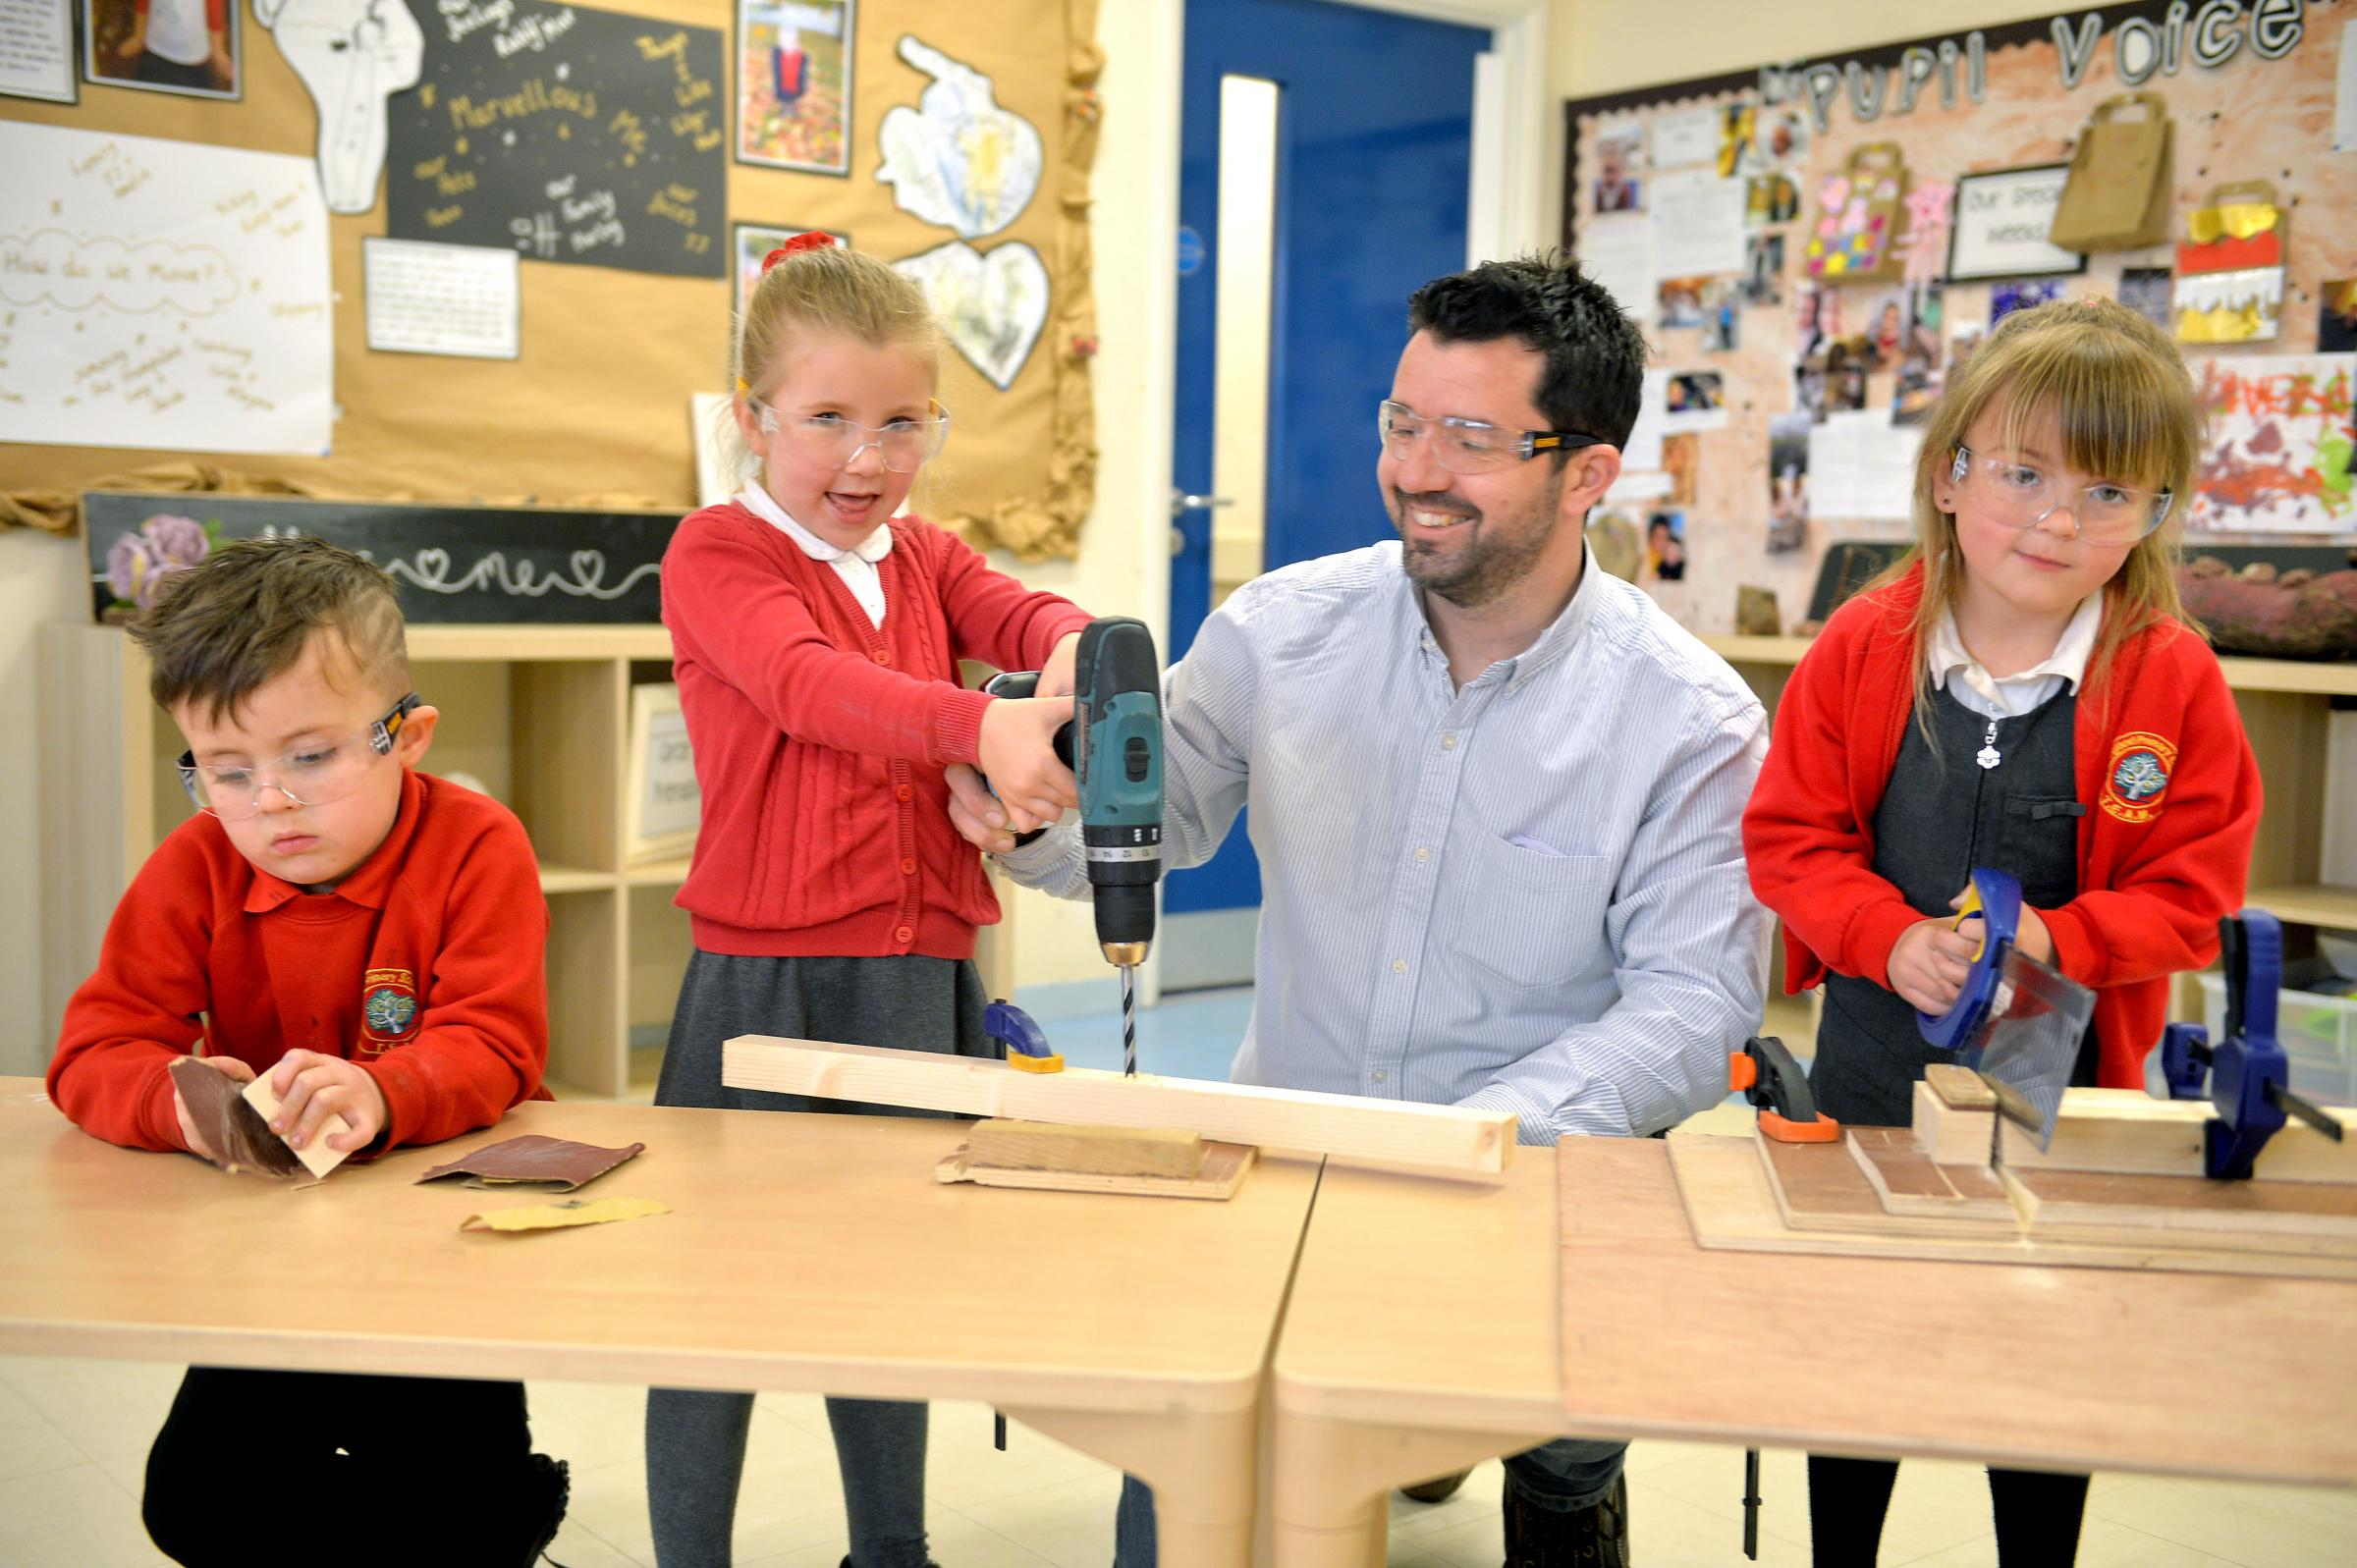 Youngsters use power tools to build puppet theatre as part of creative arts project